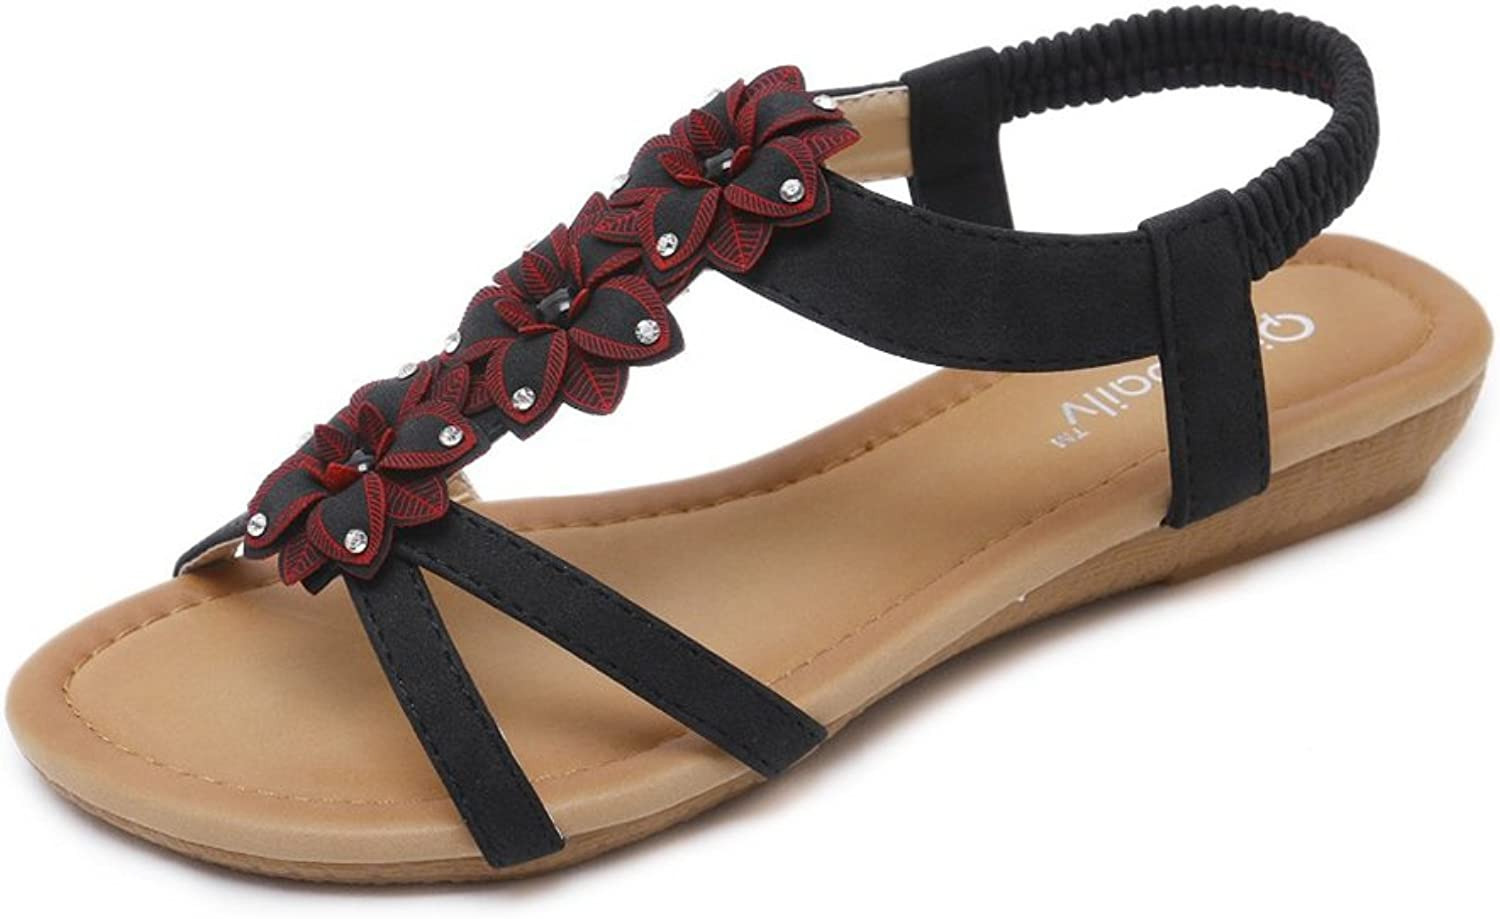 Kyle Walsh Pa Women Flat Sandals,Sweet Bohemia Flowers Peep Toe Holiday Beach shoes Black